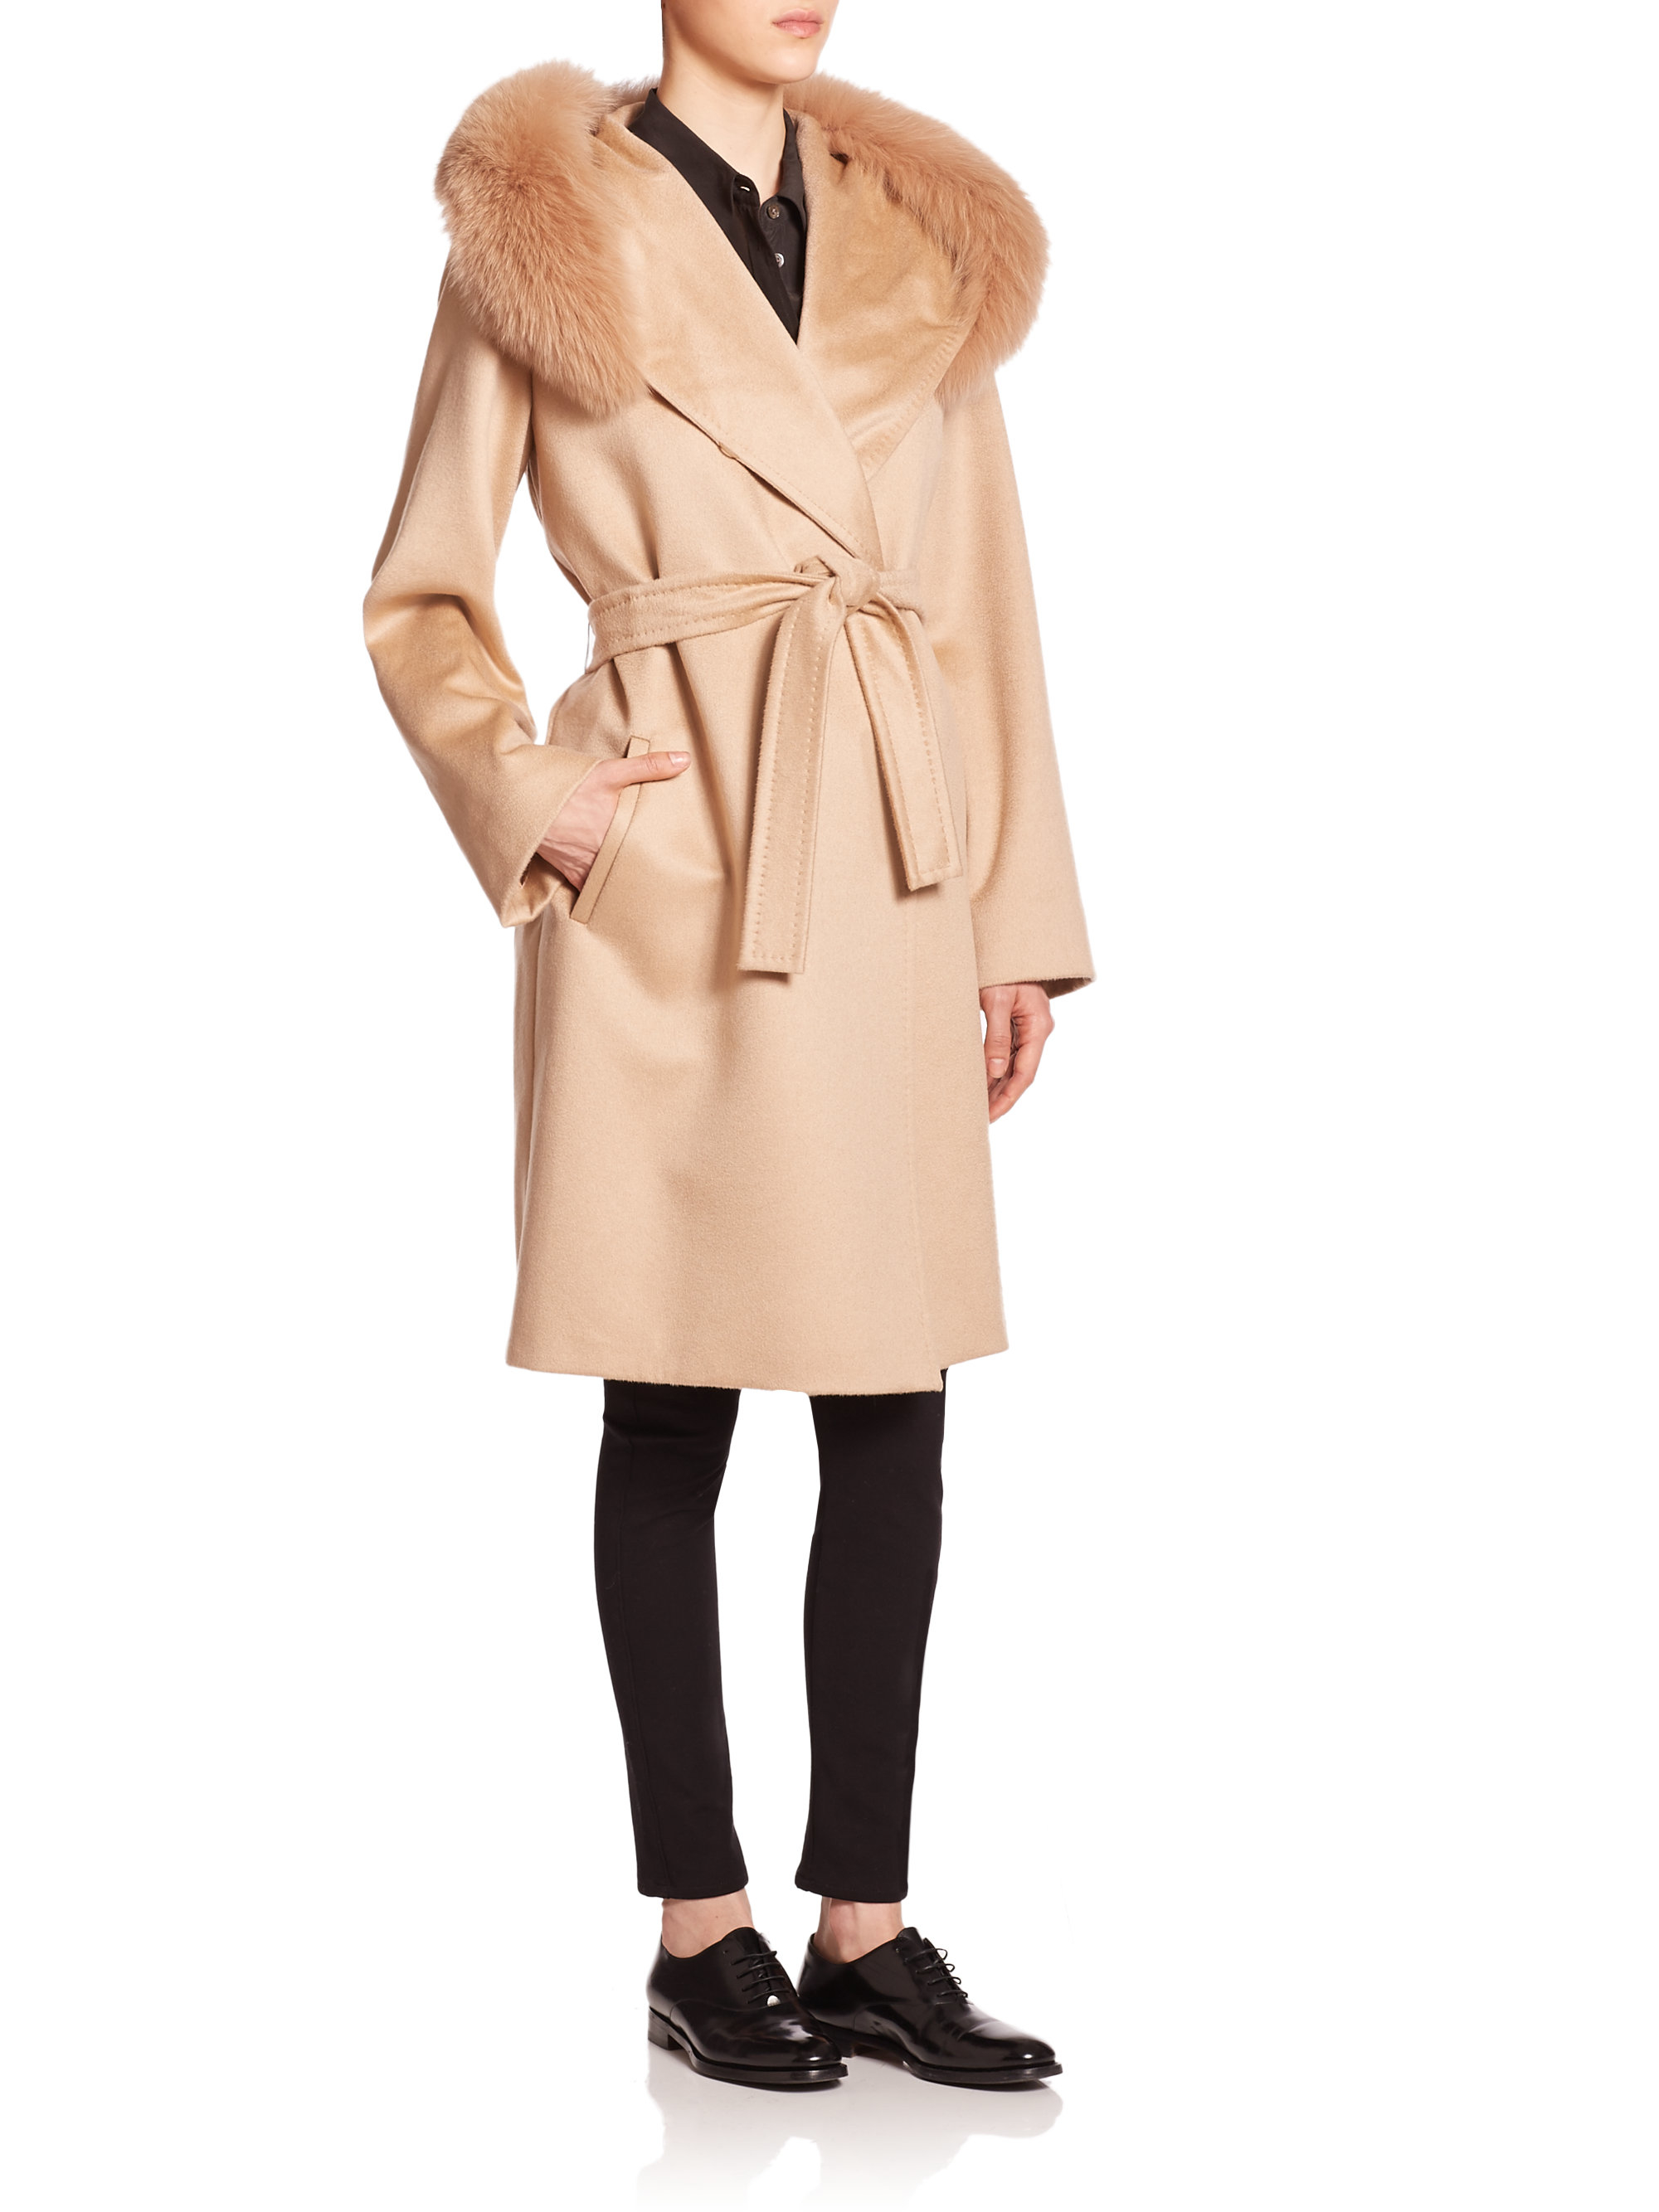 Max mara studio Lallo Fur-trimmed Cashmere Coat in Natural | Lyst